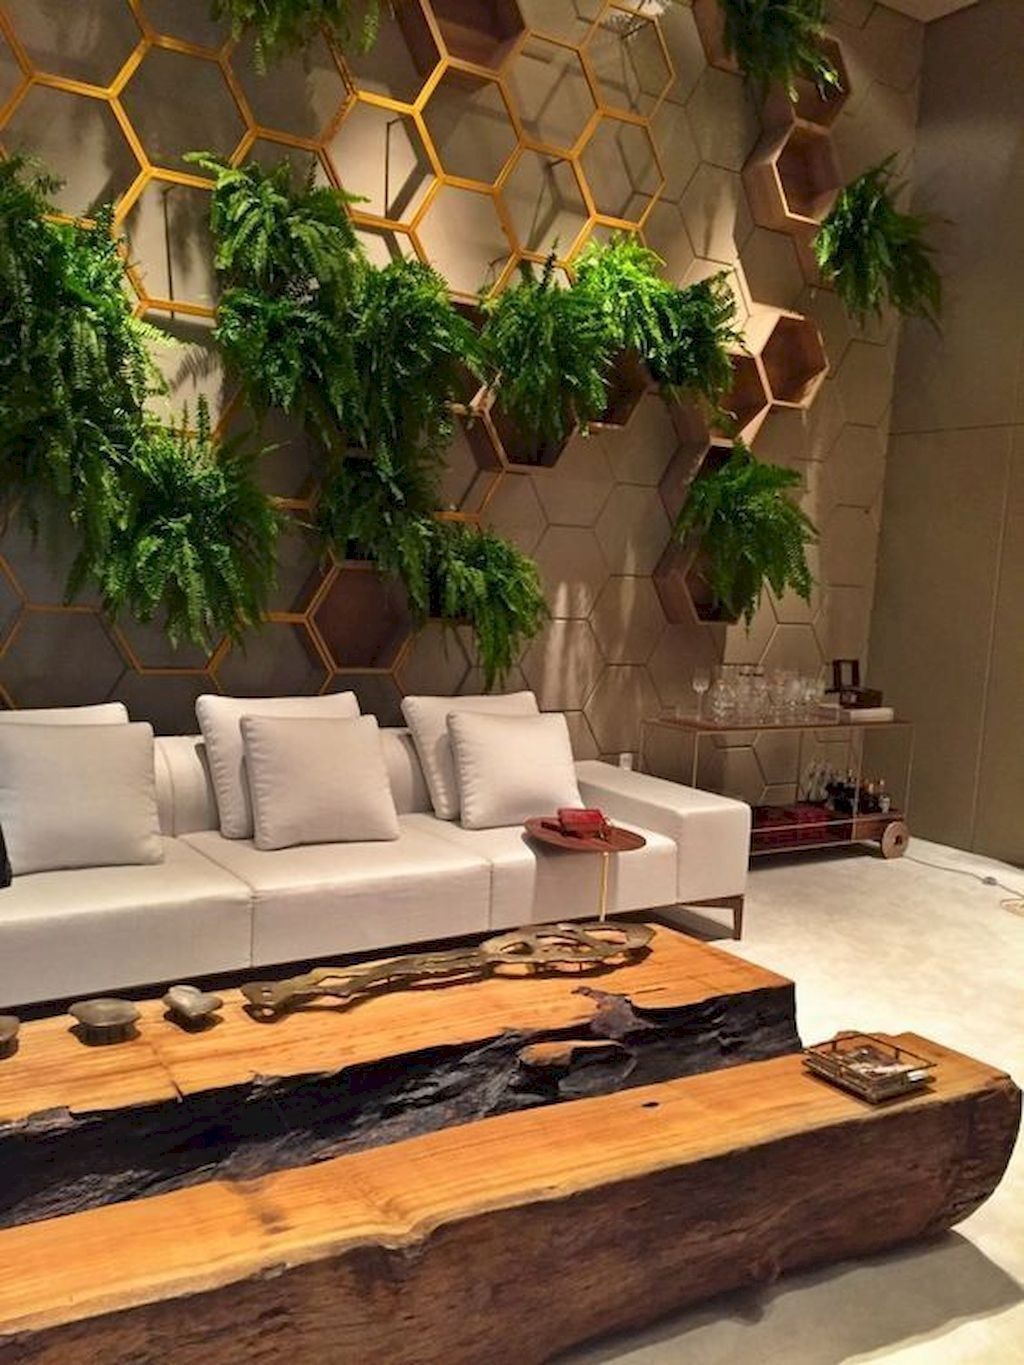 Amazing Living Wall Indoor Decoration Ideas 23